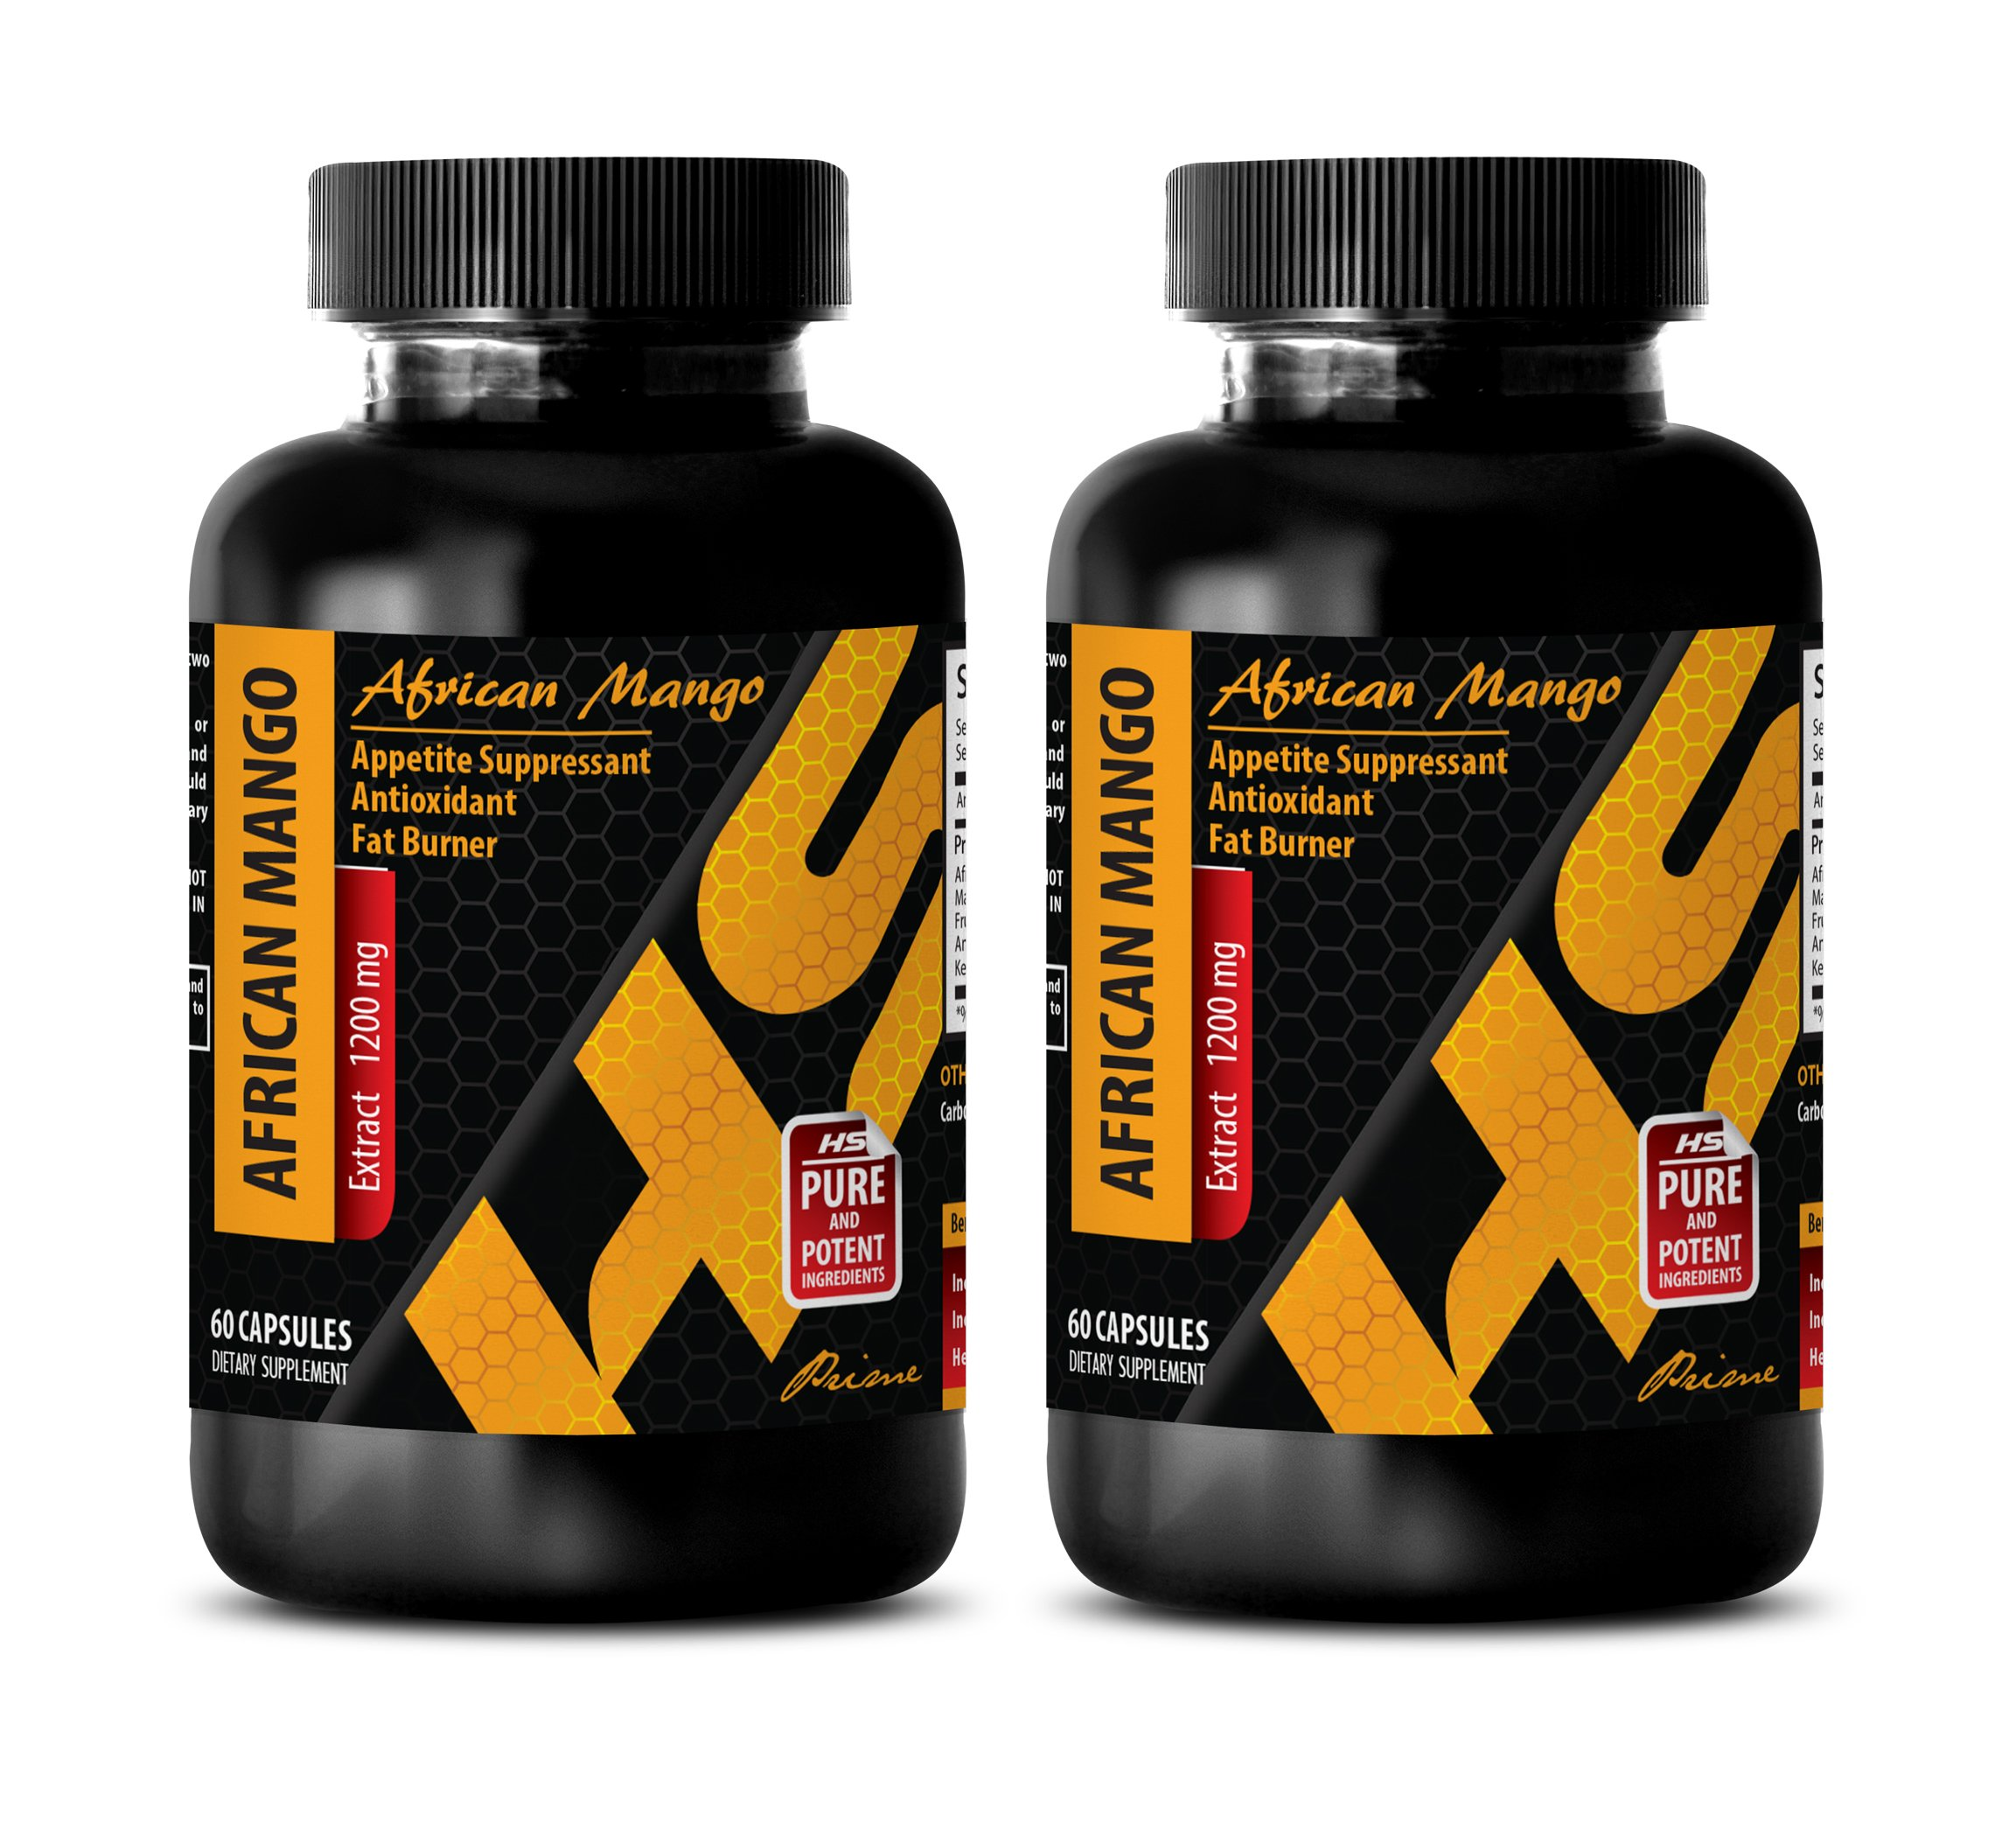 fat burning vitamins for women - AFRICAN MANGO EXTRACT 1200MG - african mango extreme - 2 Bottles (120 Capsules)